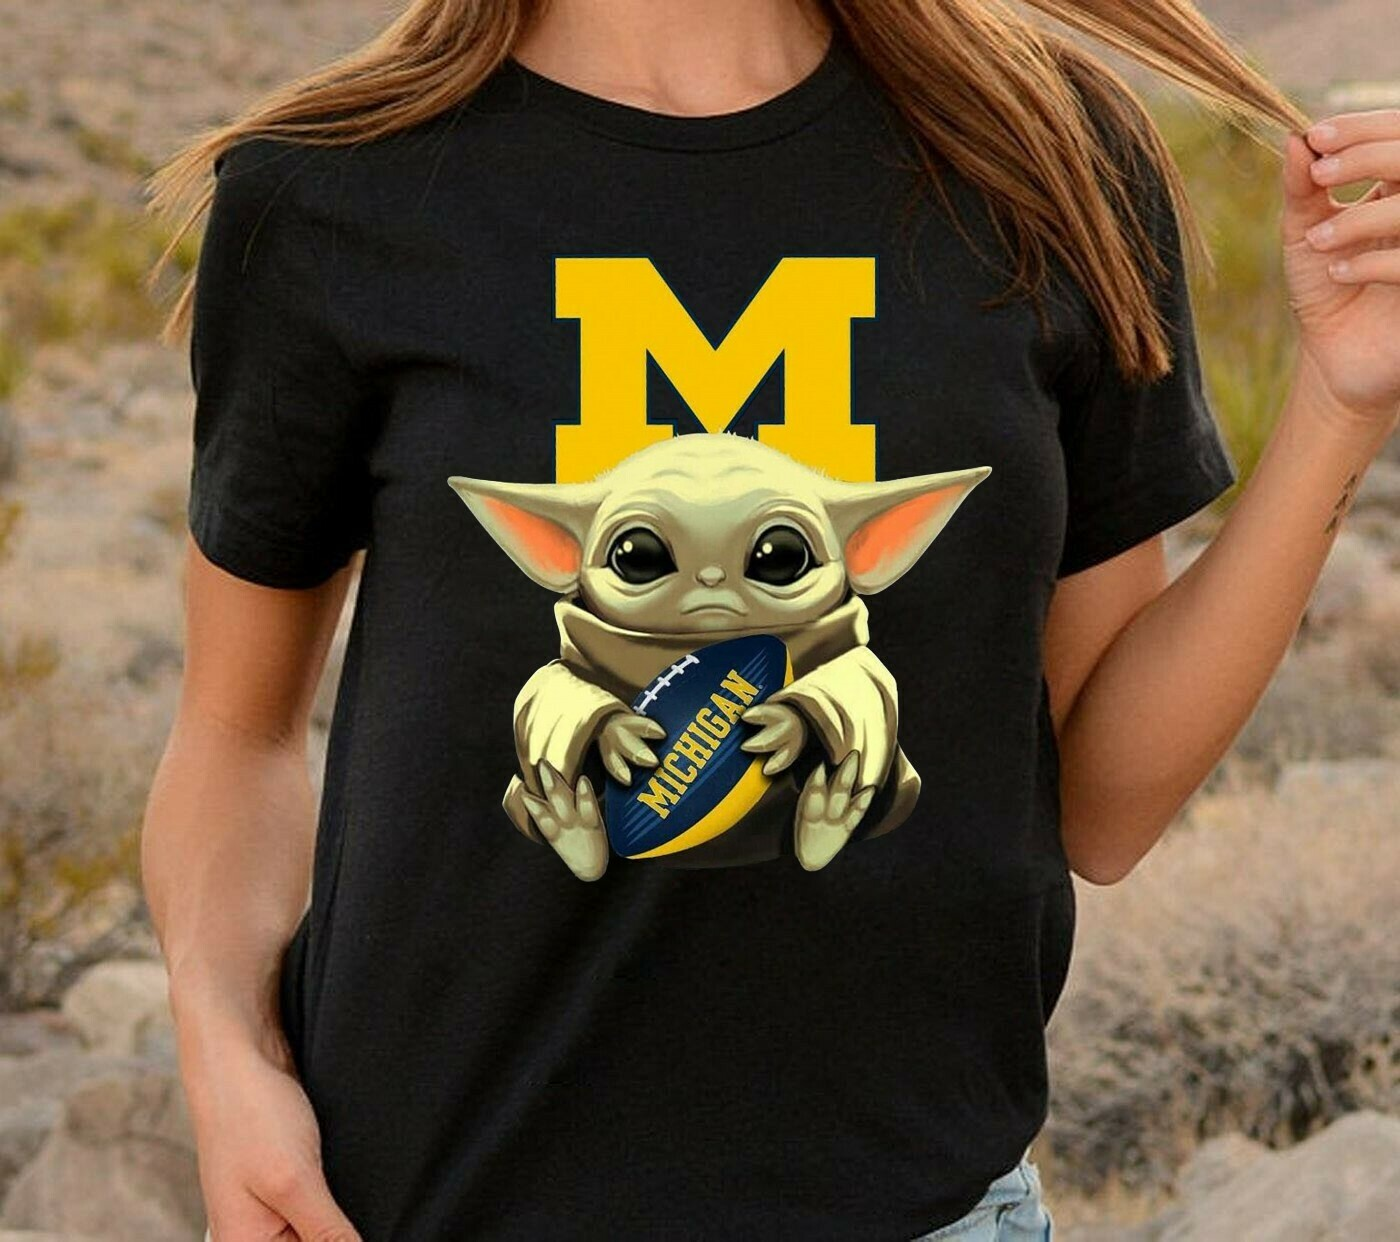 Baby Yoda Hug Michigan Wolverines,Star Wars The Mandalorian The Child First Memories Floating NFL Football Team Fan  T-Shirt Hoodie Sweatshirt Sweater Tee Kids Youth Gifts Jolly Family Gifts